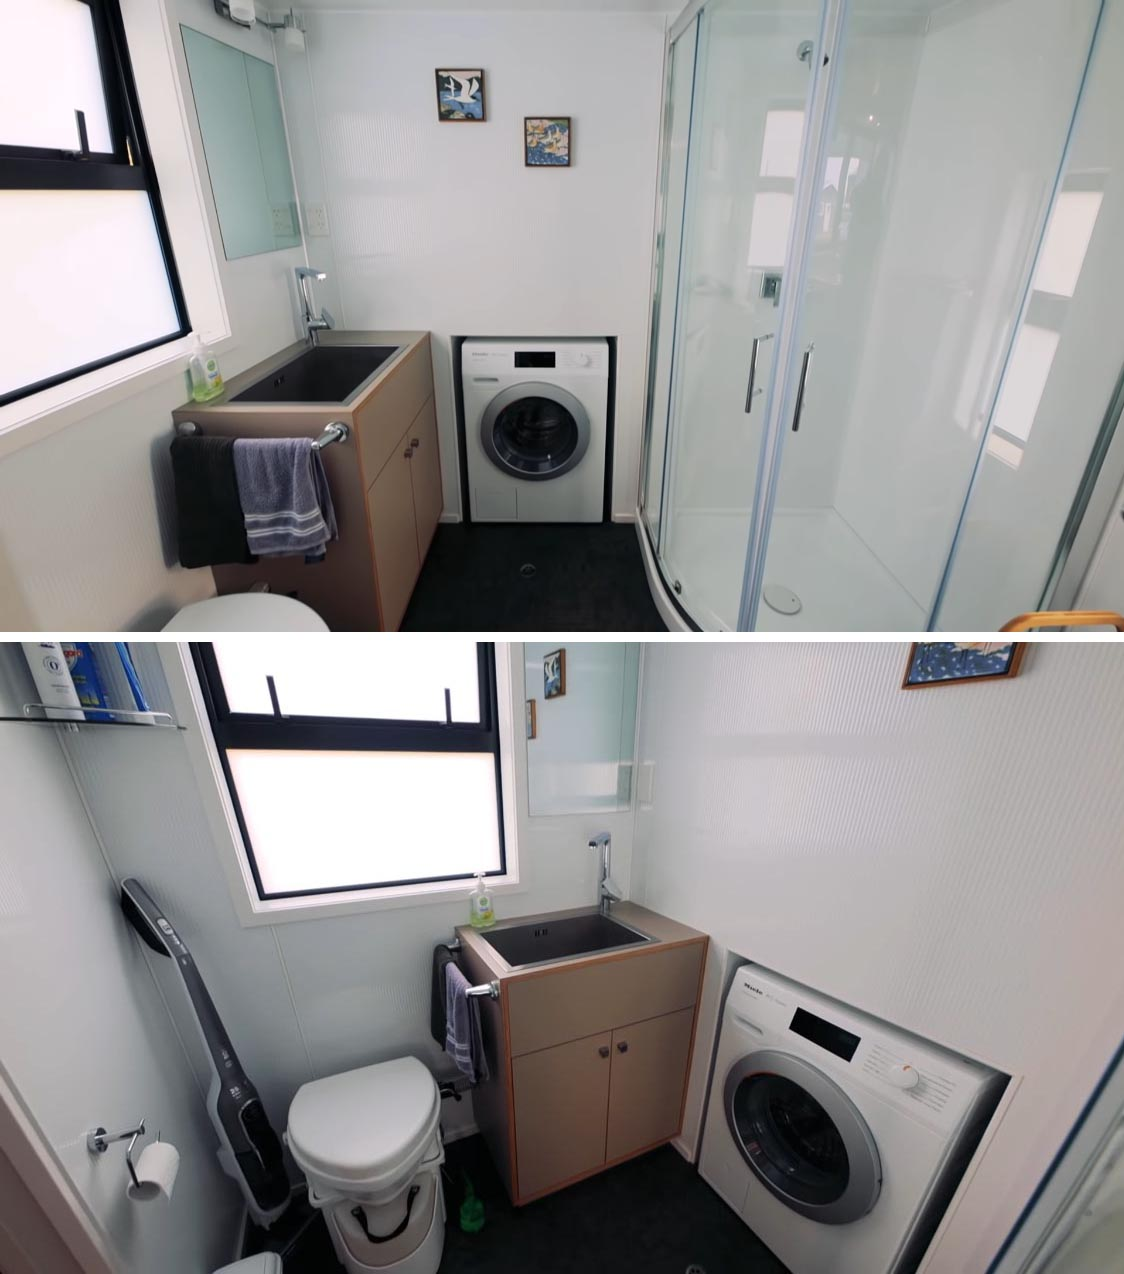 This modern tiny home bathroom includes a shower with curved surround, a washing machine, vanity, and toilet.